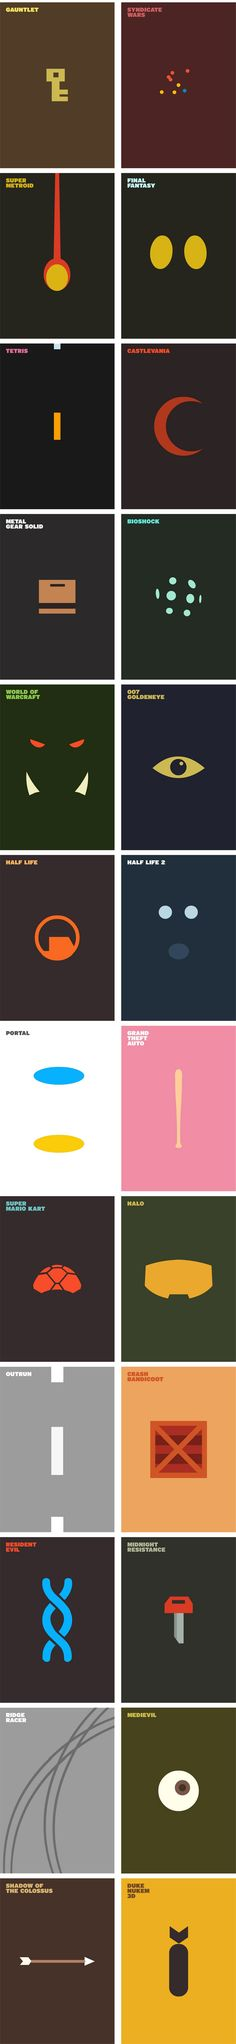 Posters games in minimalist version | Things for Geeks